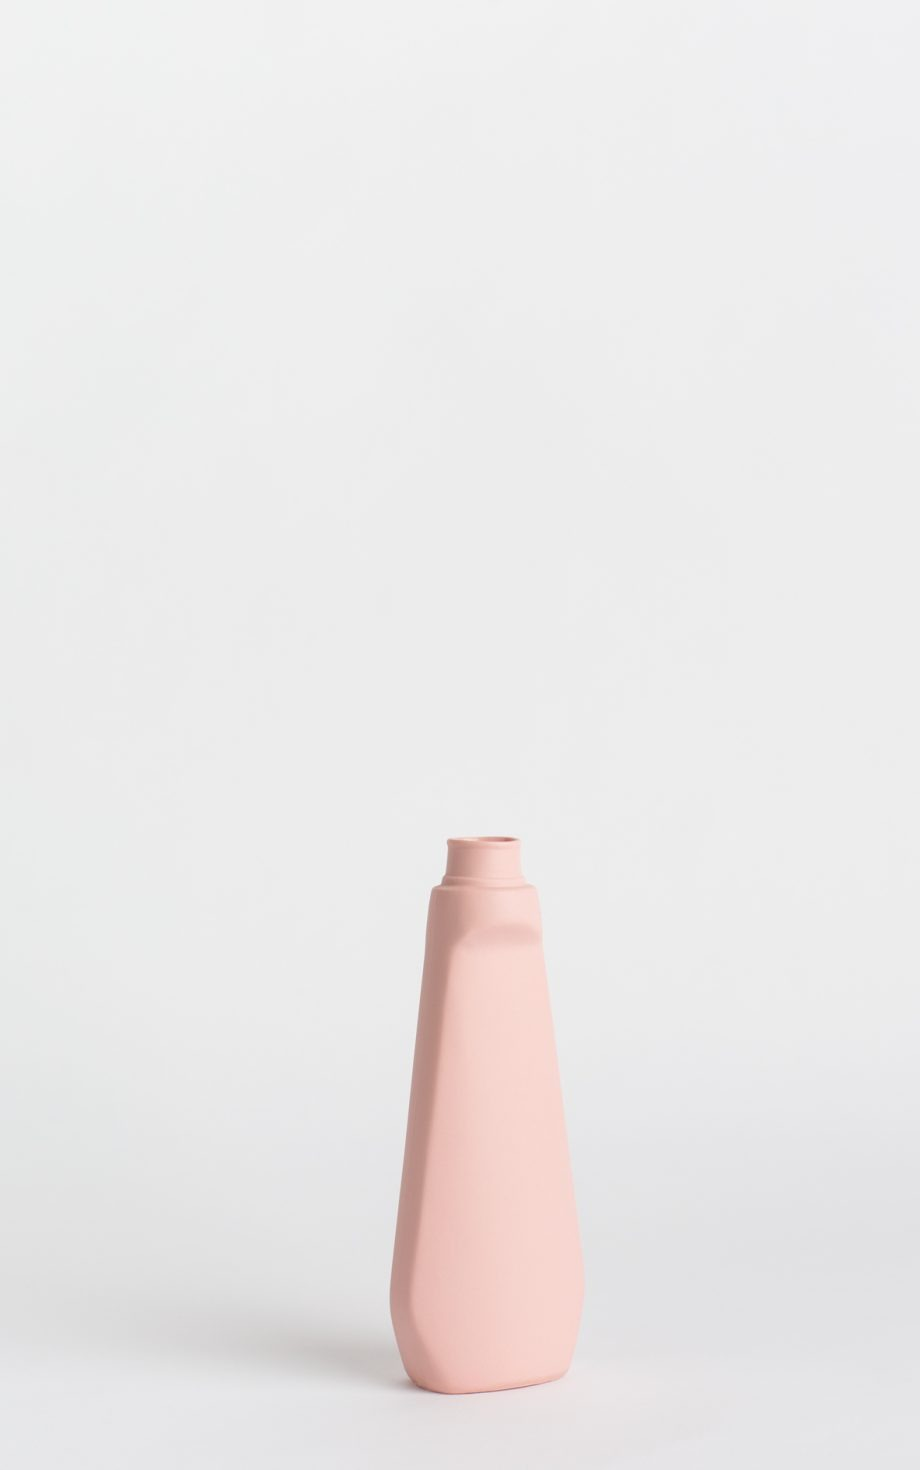 bottle vase #4 rose pink